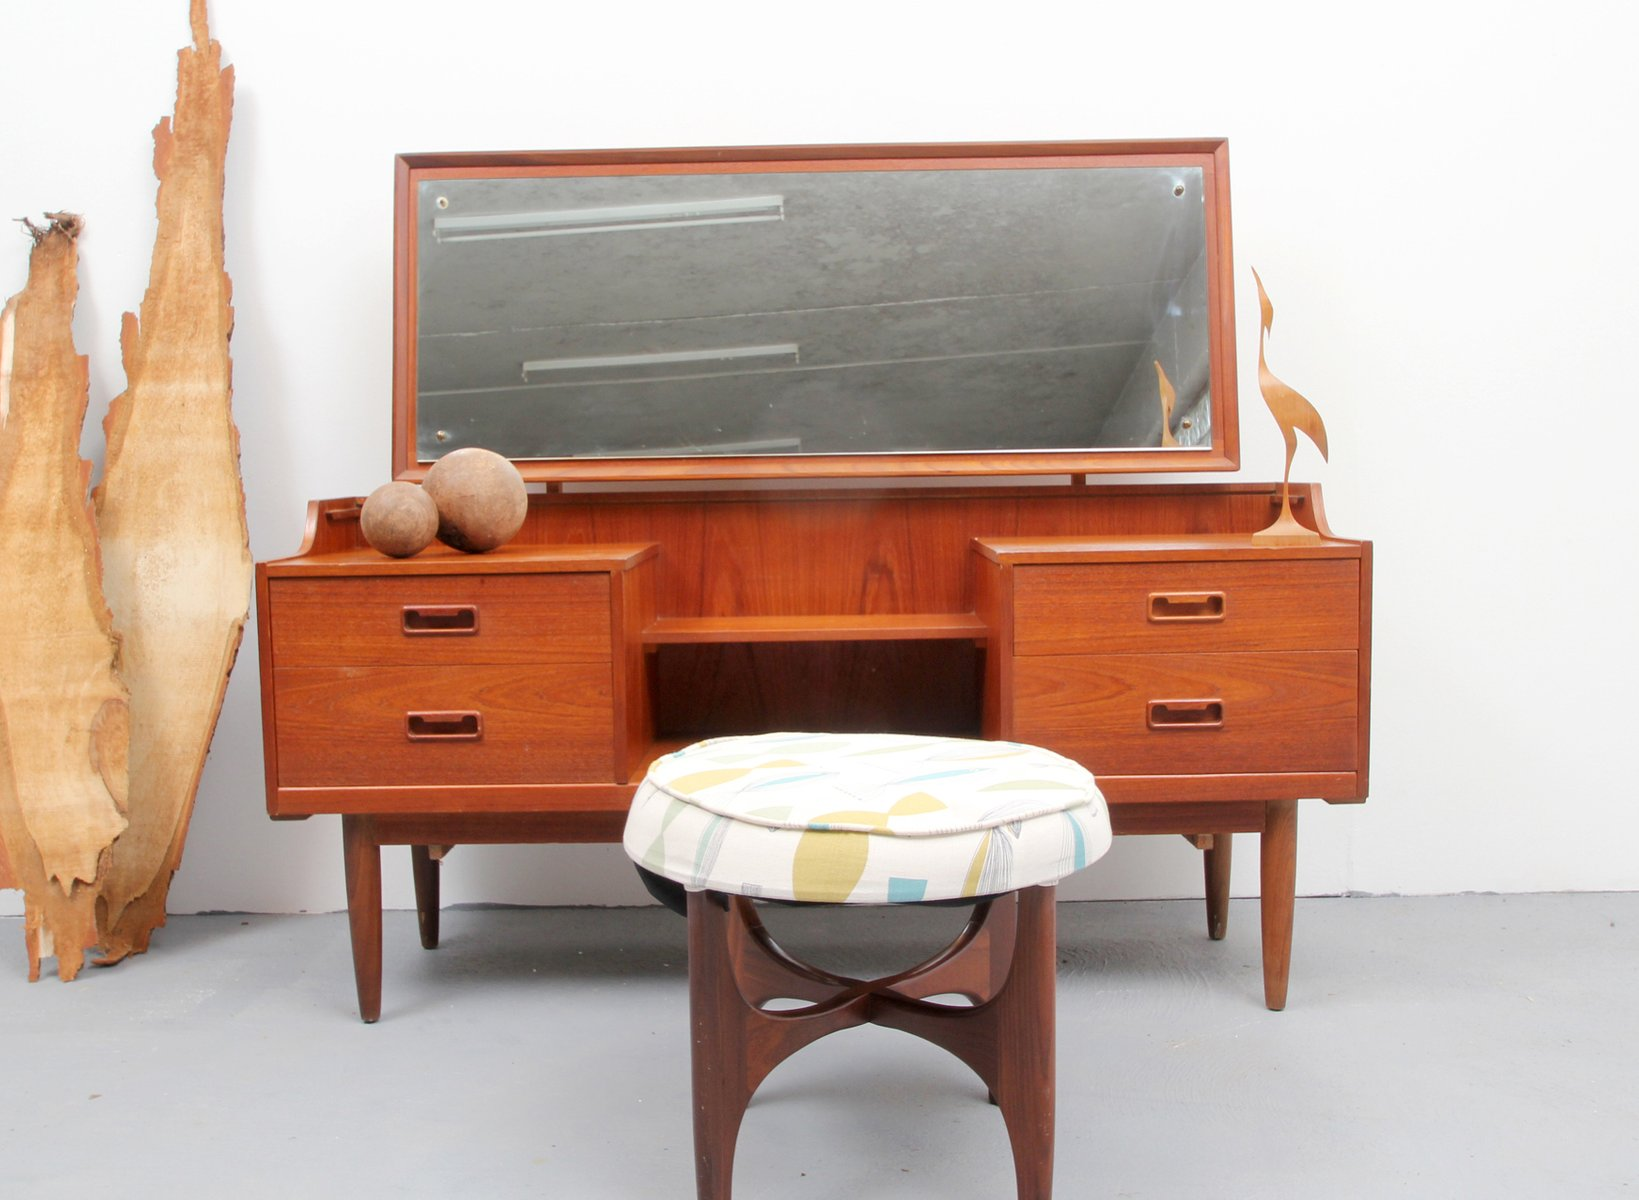 Table Dressing Wood 1950 Scarved ~ Mid century teak dressing table s for sale at pamono